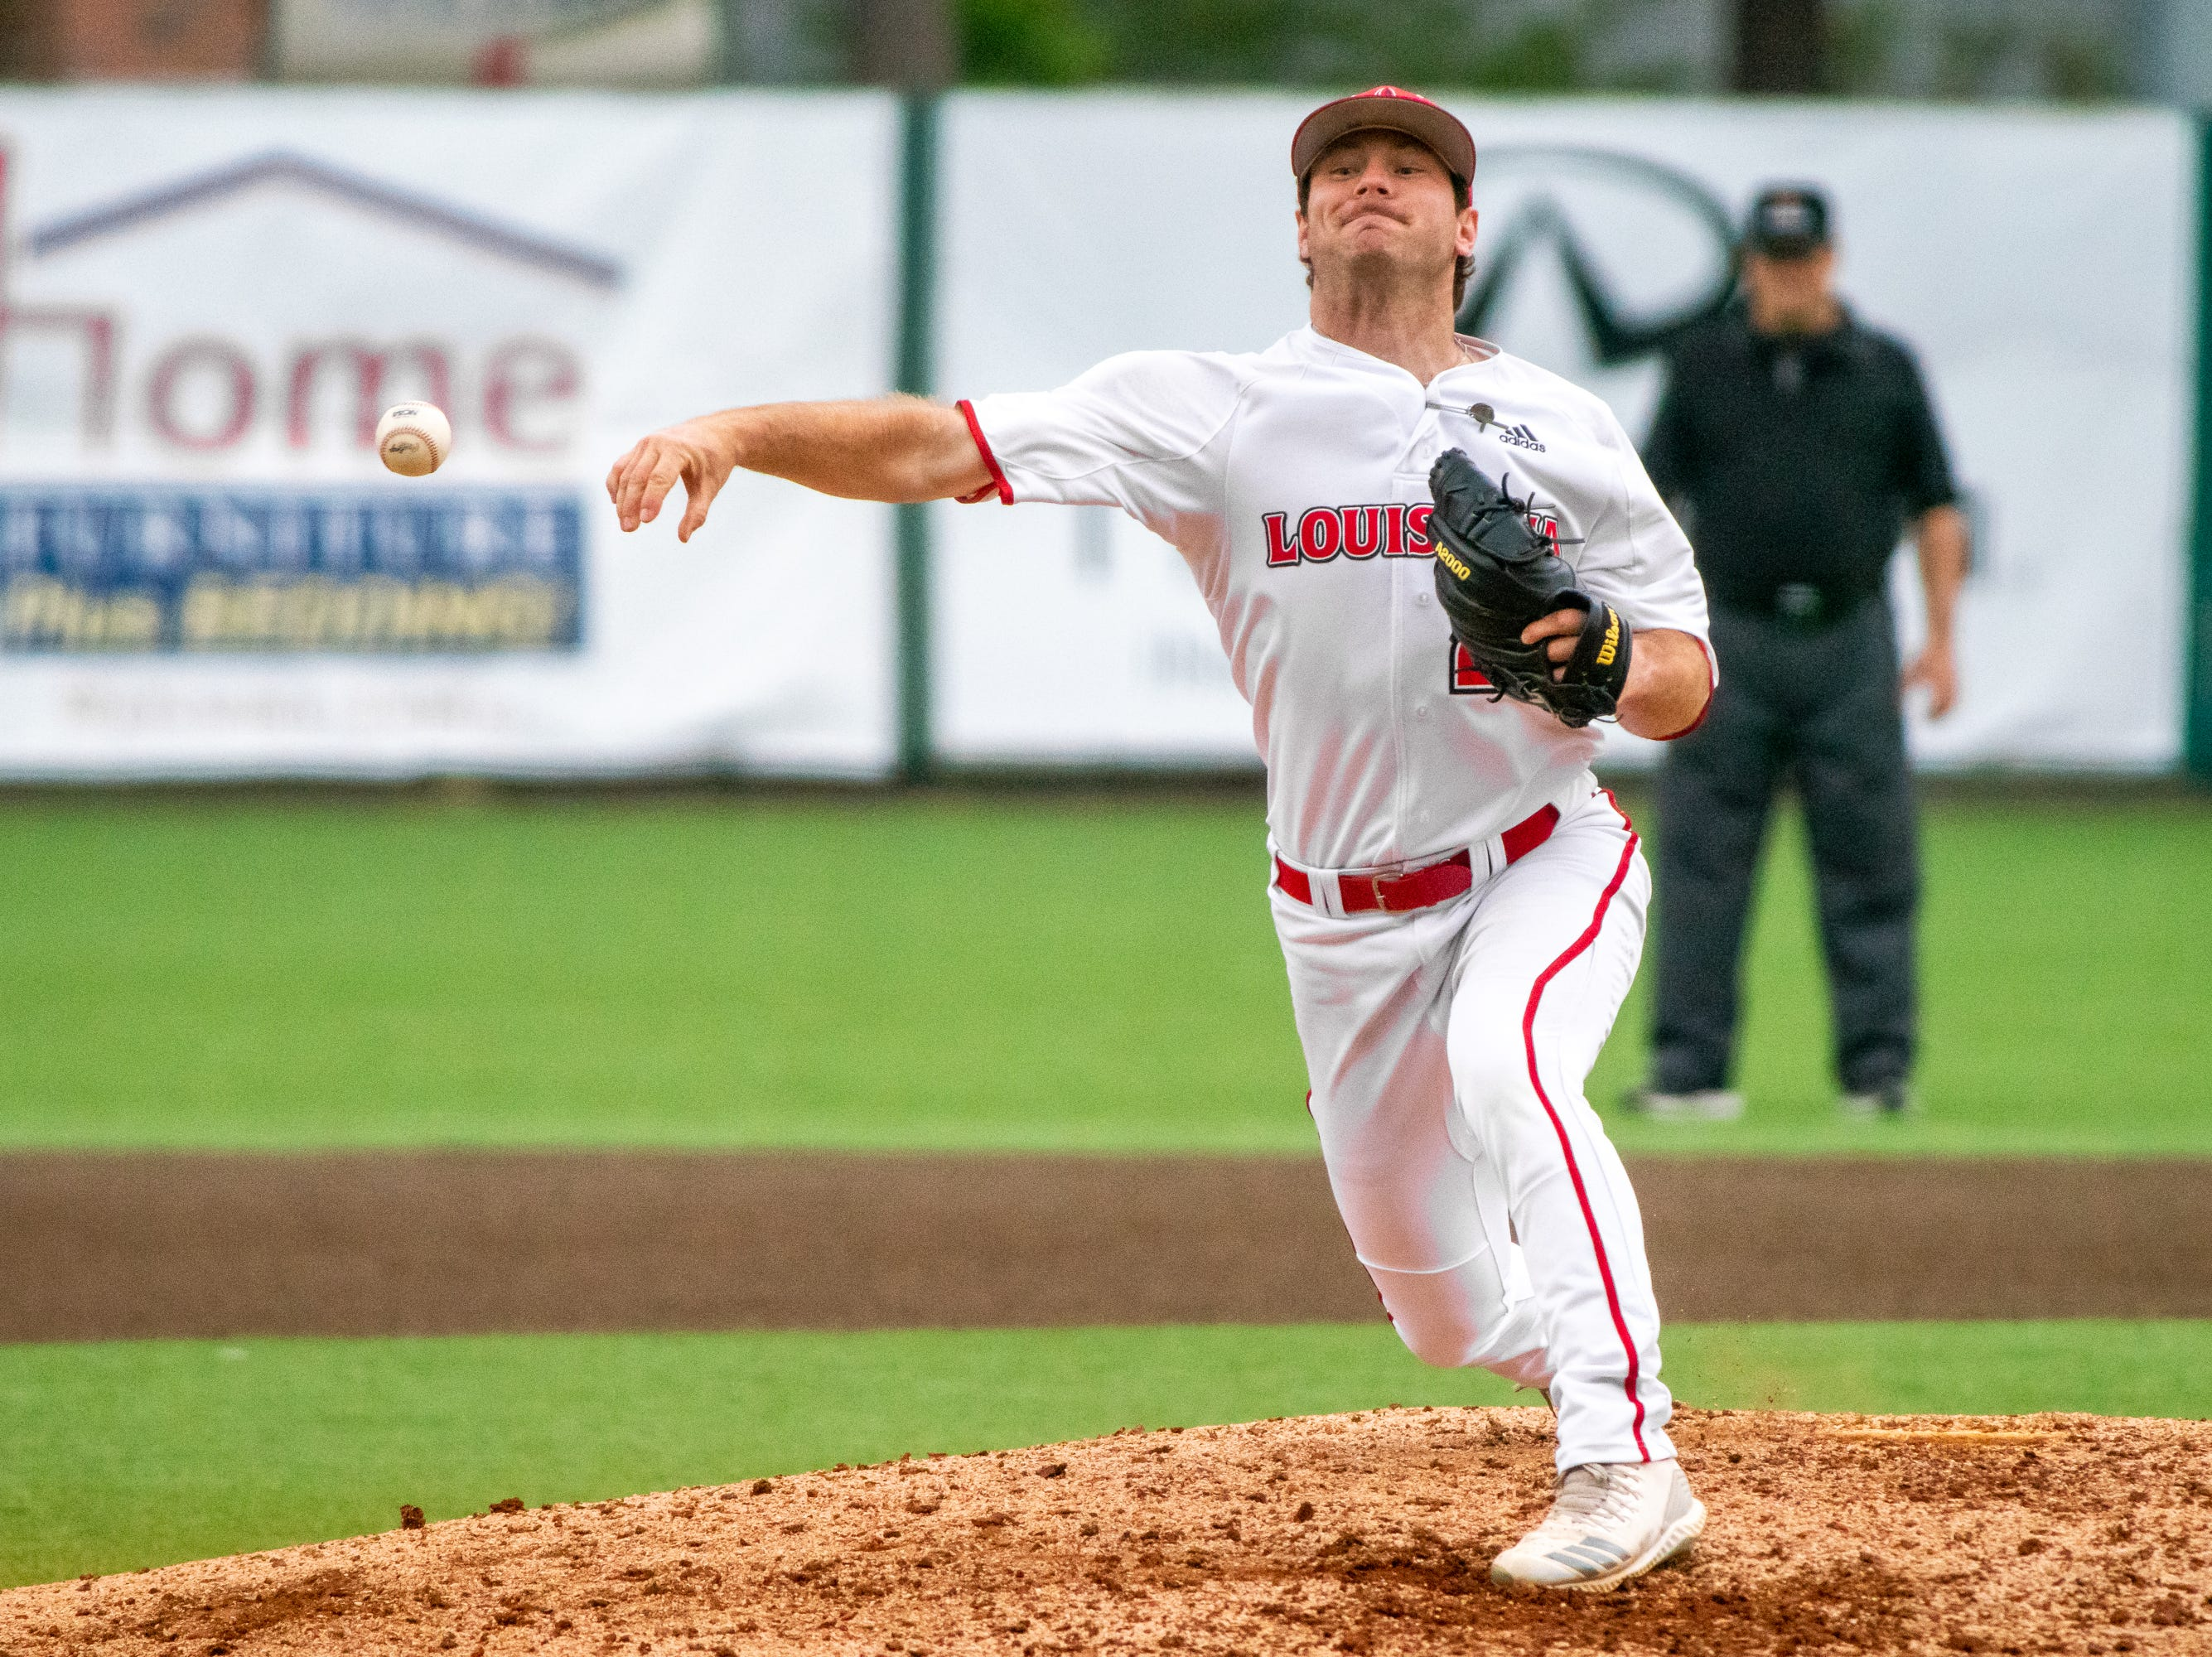 """UL's Caleb Armstrong throws out a pitch from the mound as the Ragin' Cajuns take on the South Alabama Jaguars at M.L. """"Tigue"""" Moore Field on Saturday, April 13, 2019."""